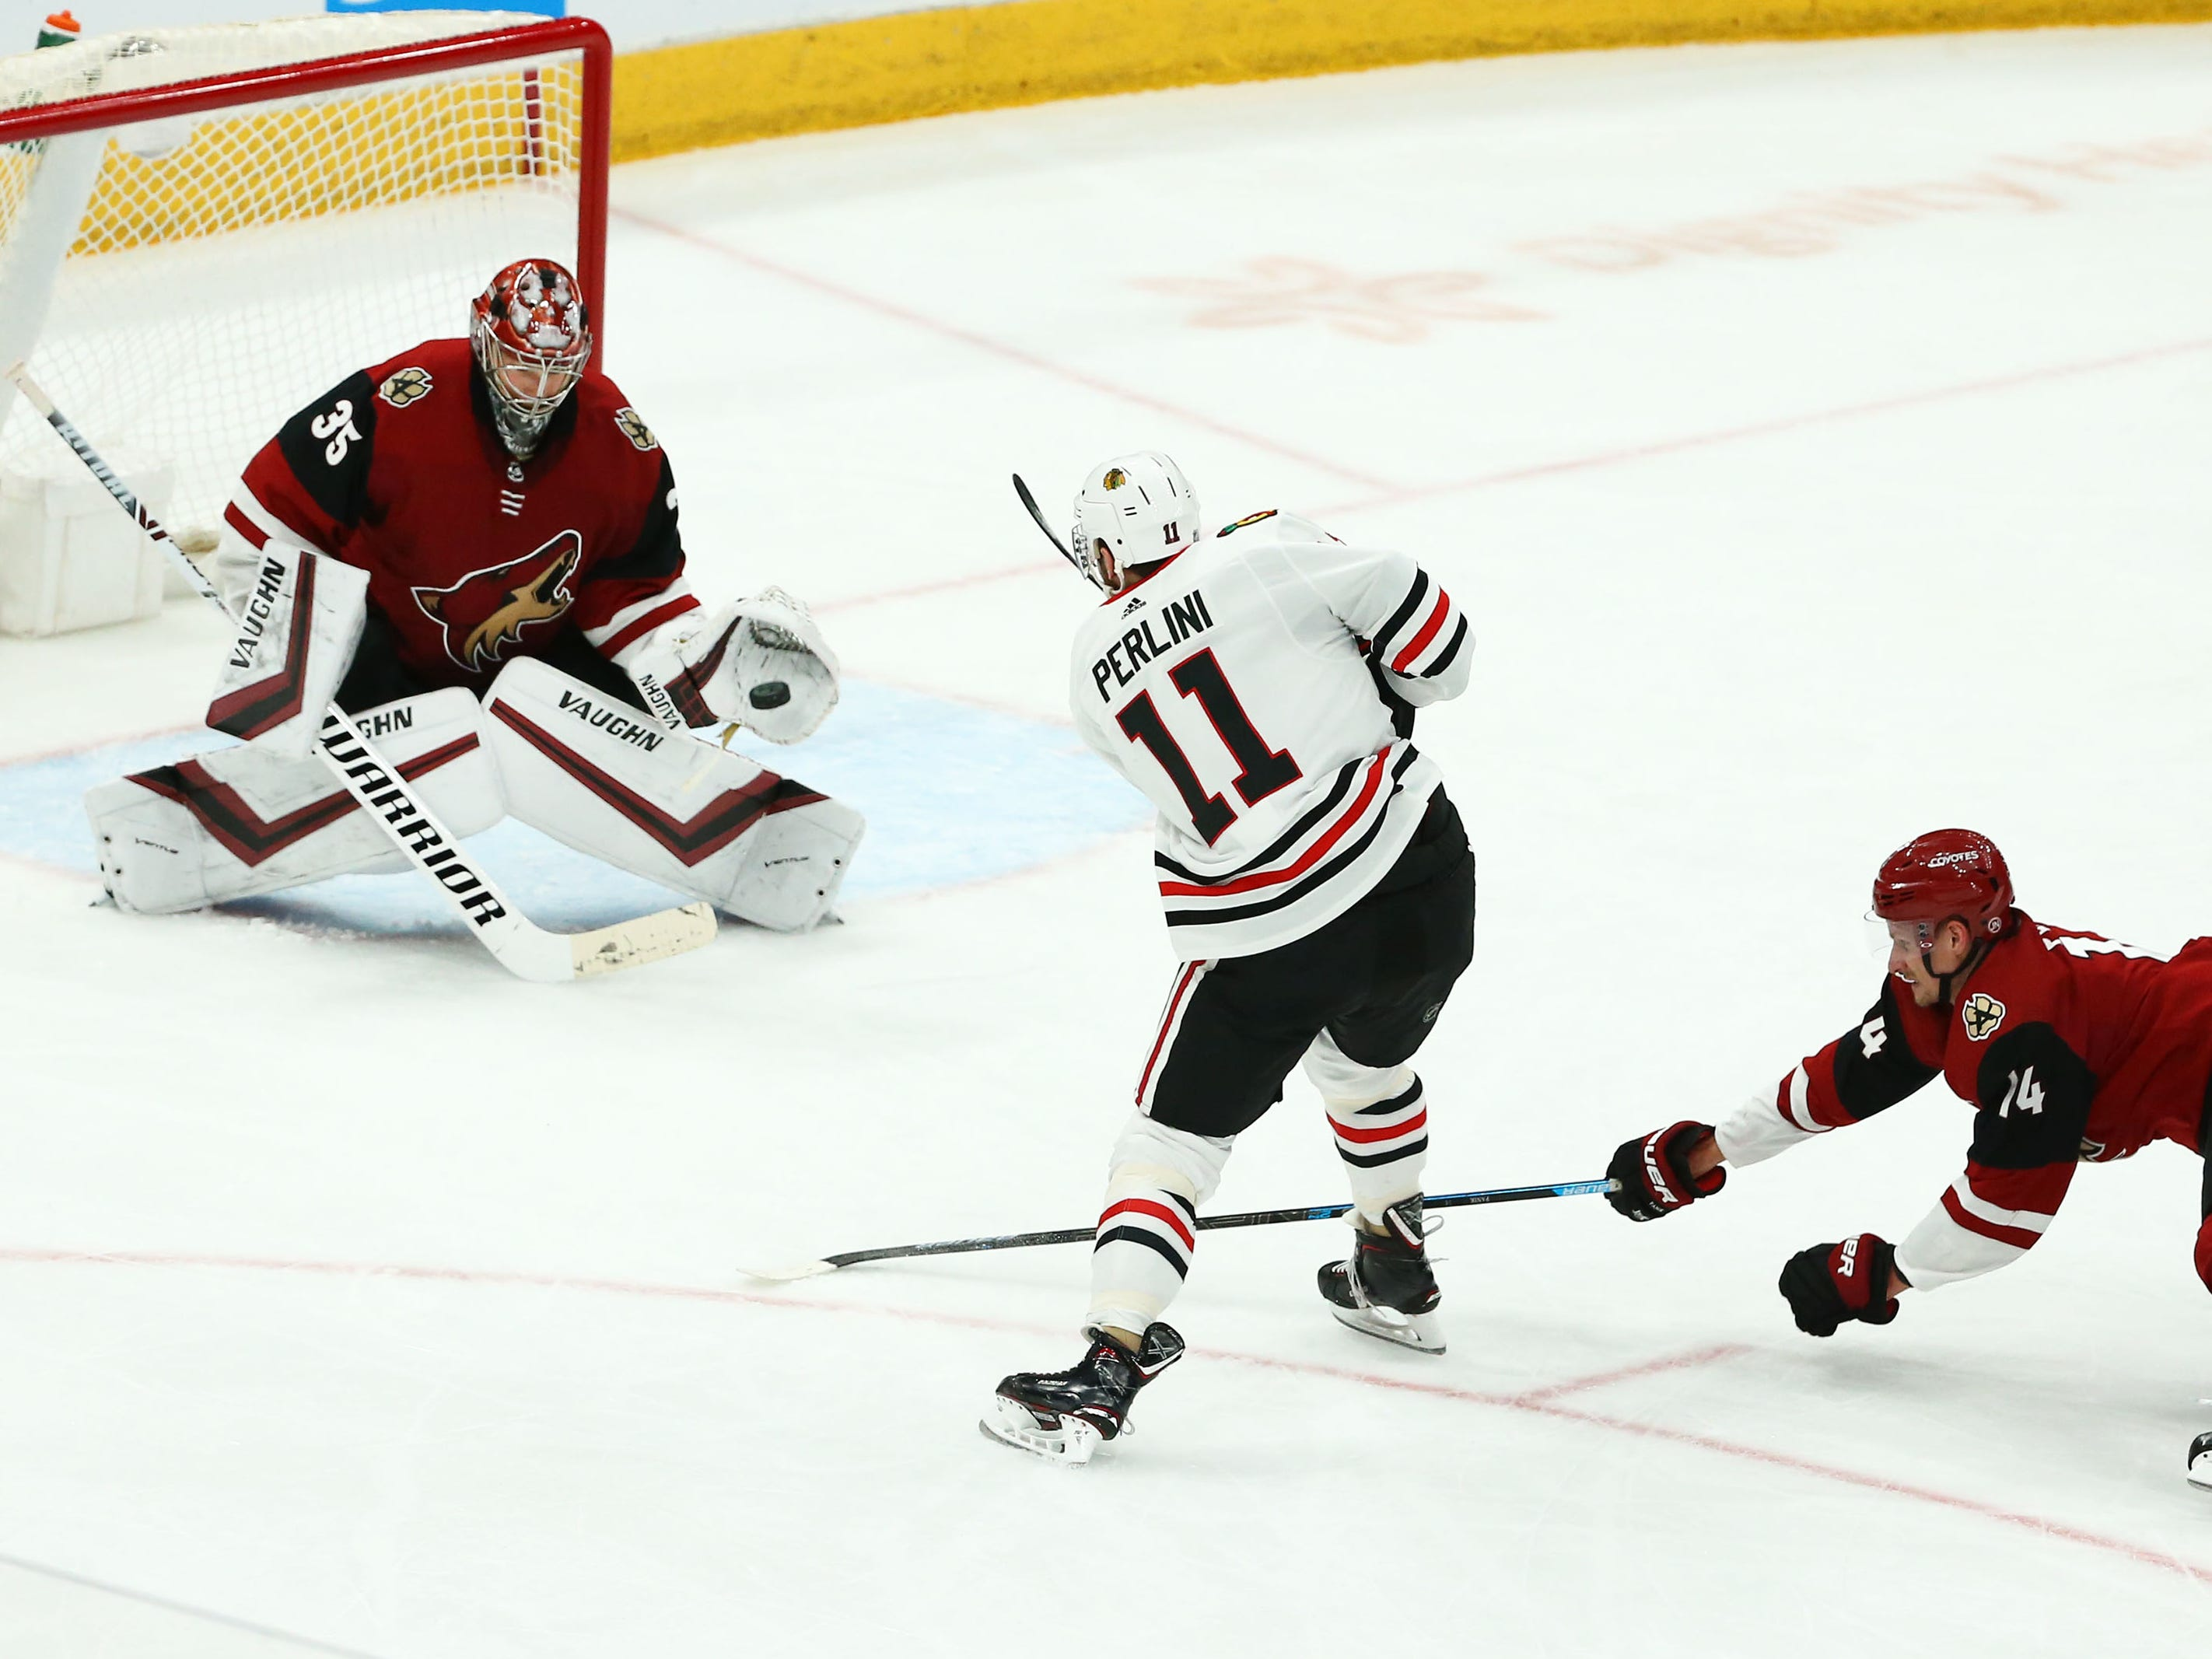 Arizona Coyotes goaltender Darcy Kuemper (35) makes a save on a shot by Chicago Blackhawks left wing Brendan Perlini (11) in the third period on Mar. 26, 2019, at Gila River Arena in Glendale, Ariz.